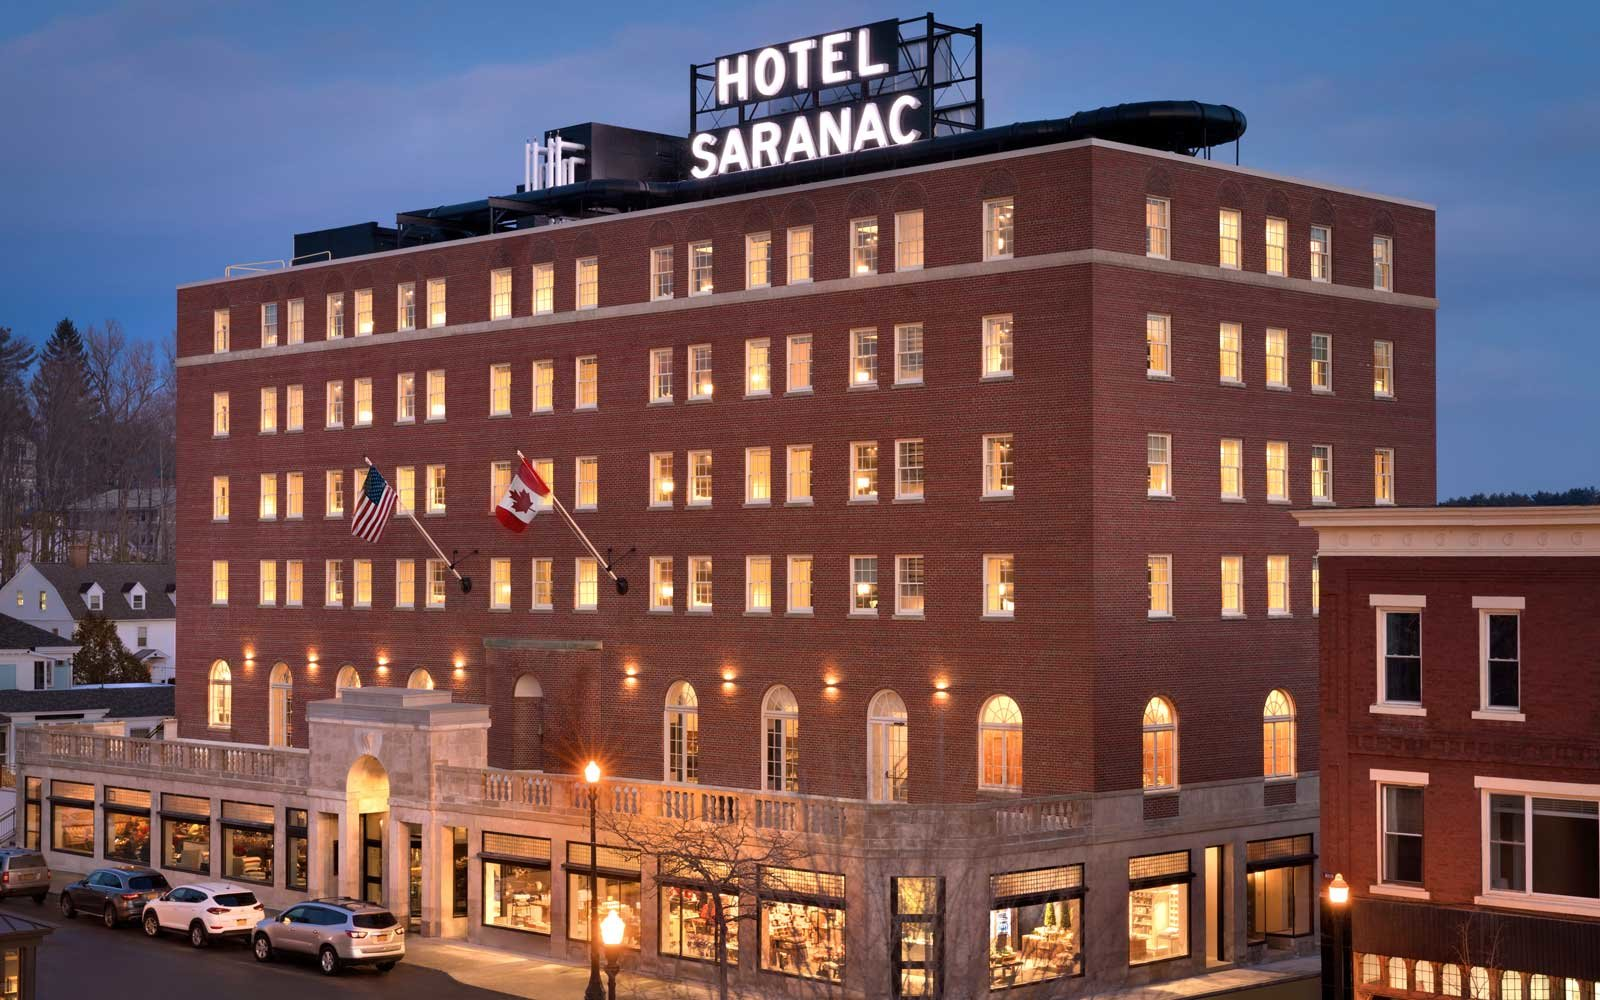 Hotel Saranac in the Adirondacks region of New York